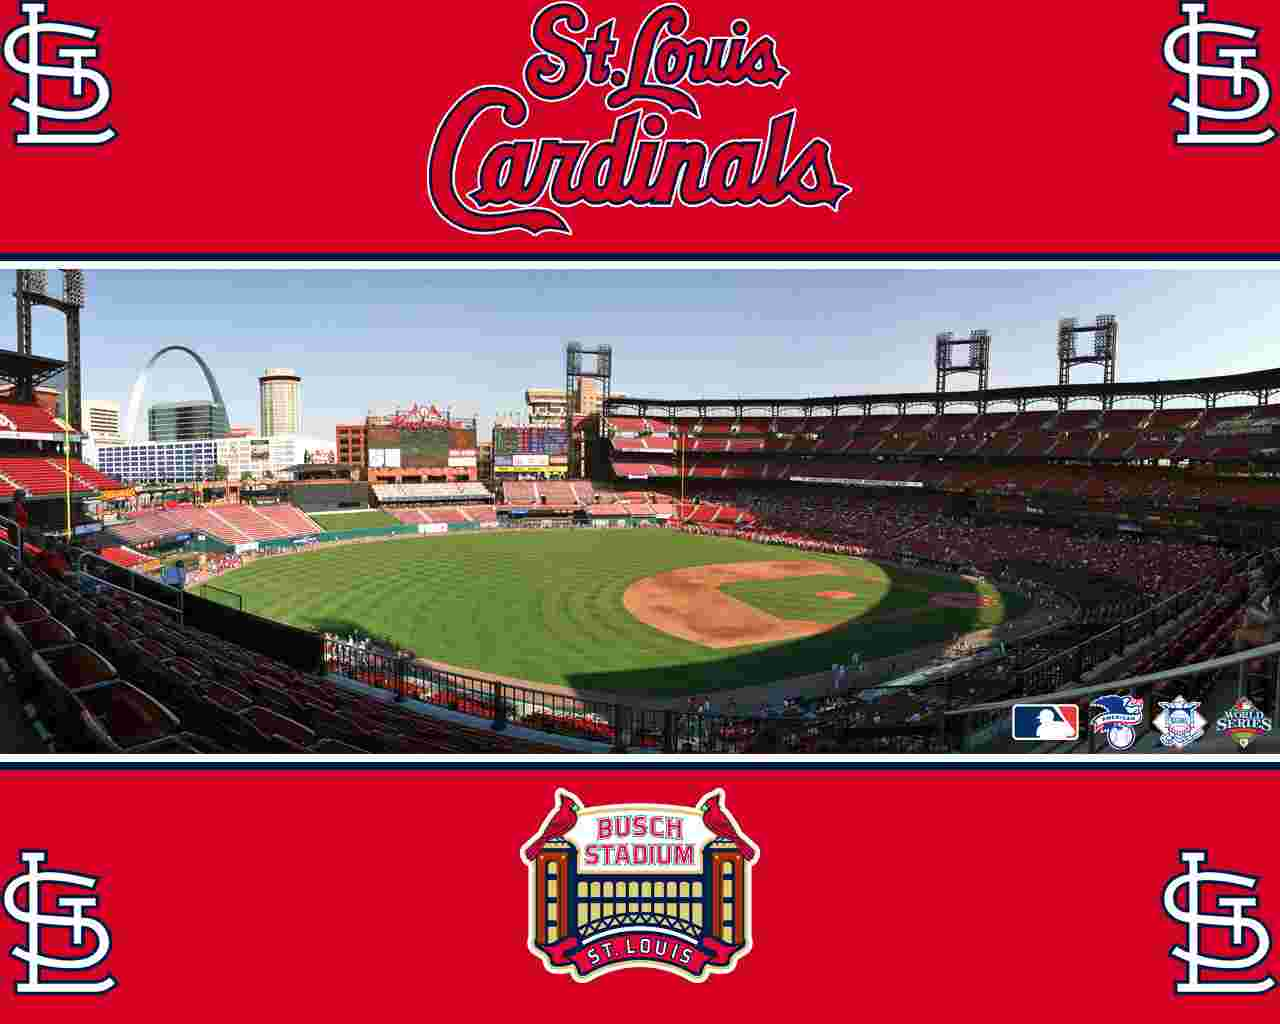 Iphone-Baseball-Cardinals-Free-high-quality-background-pictures-×-Cardinals-Baseball-Wallpa-wallpaper-wpc9006607